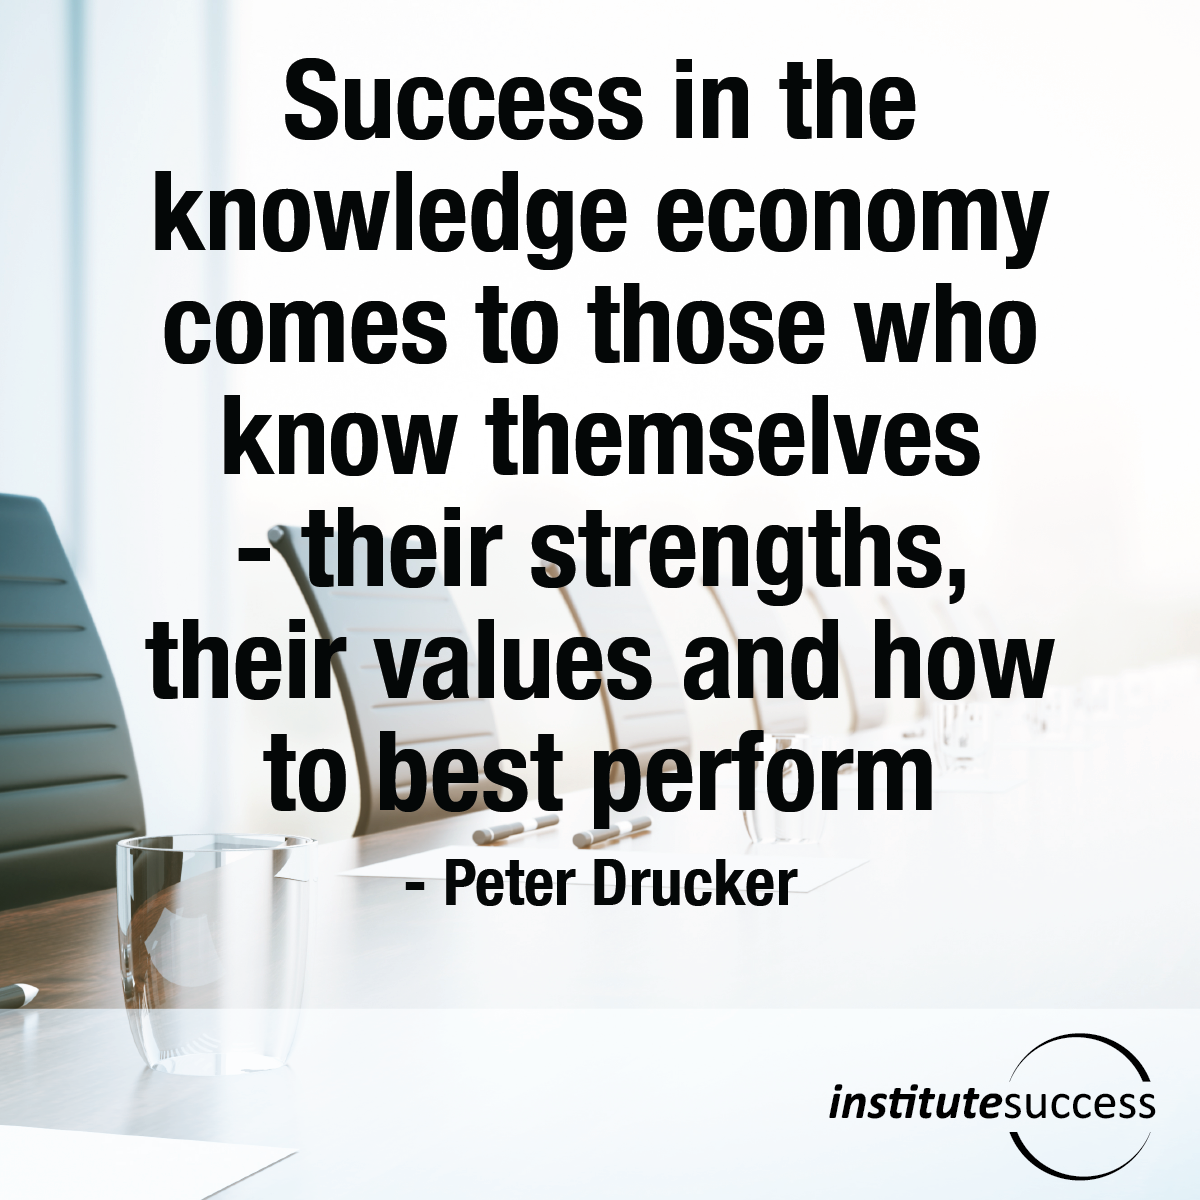 Success in the knowledge economy comes to those who know themselves—their strengths, their values and how to best perform – Peter Drucker